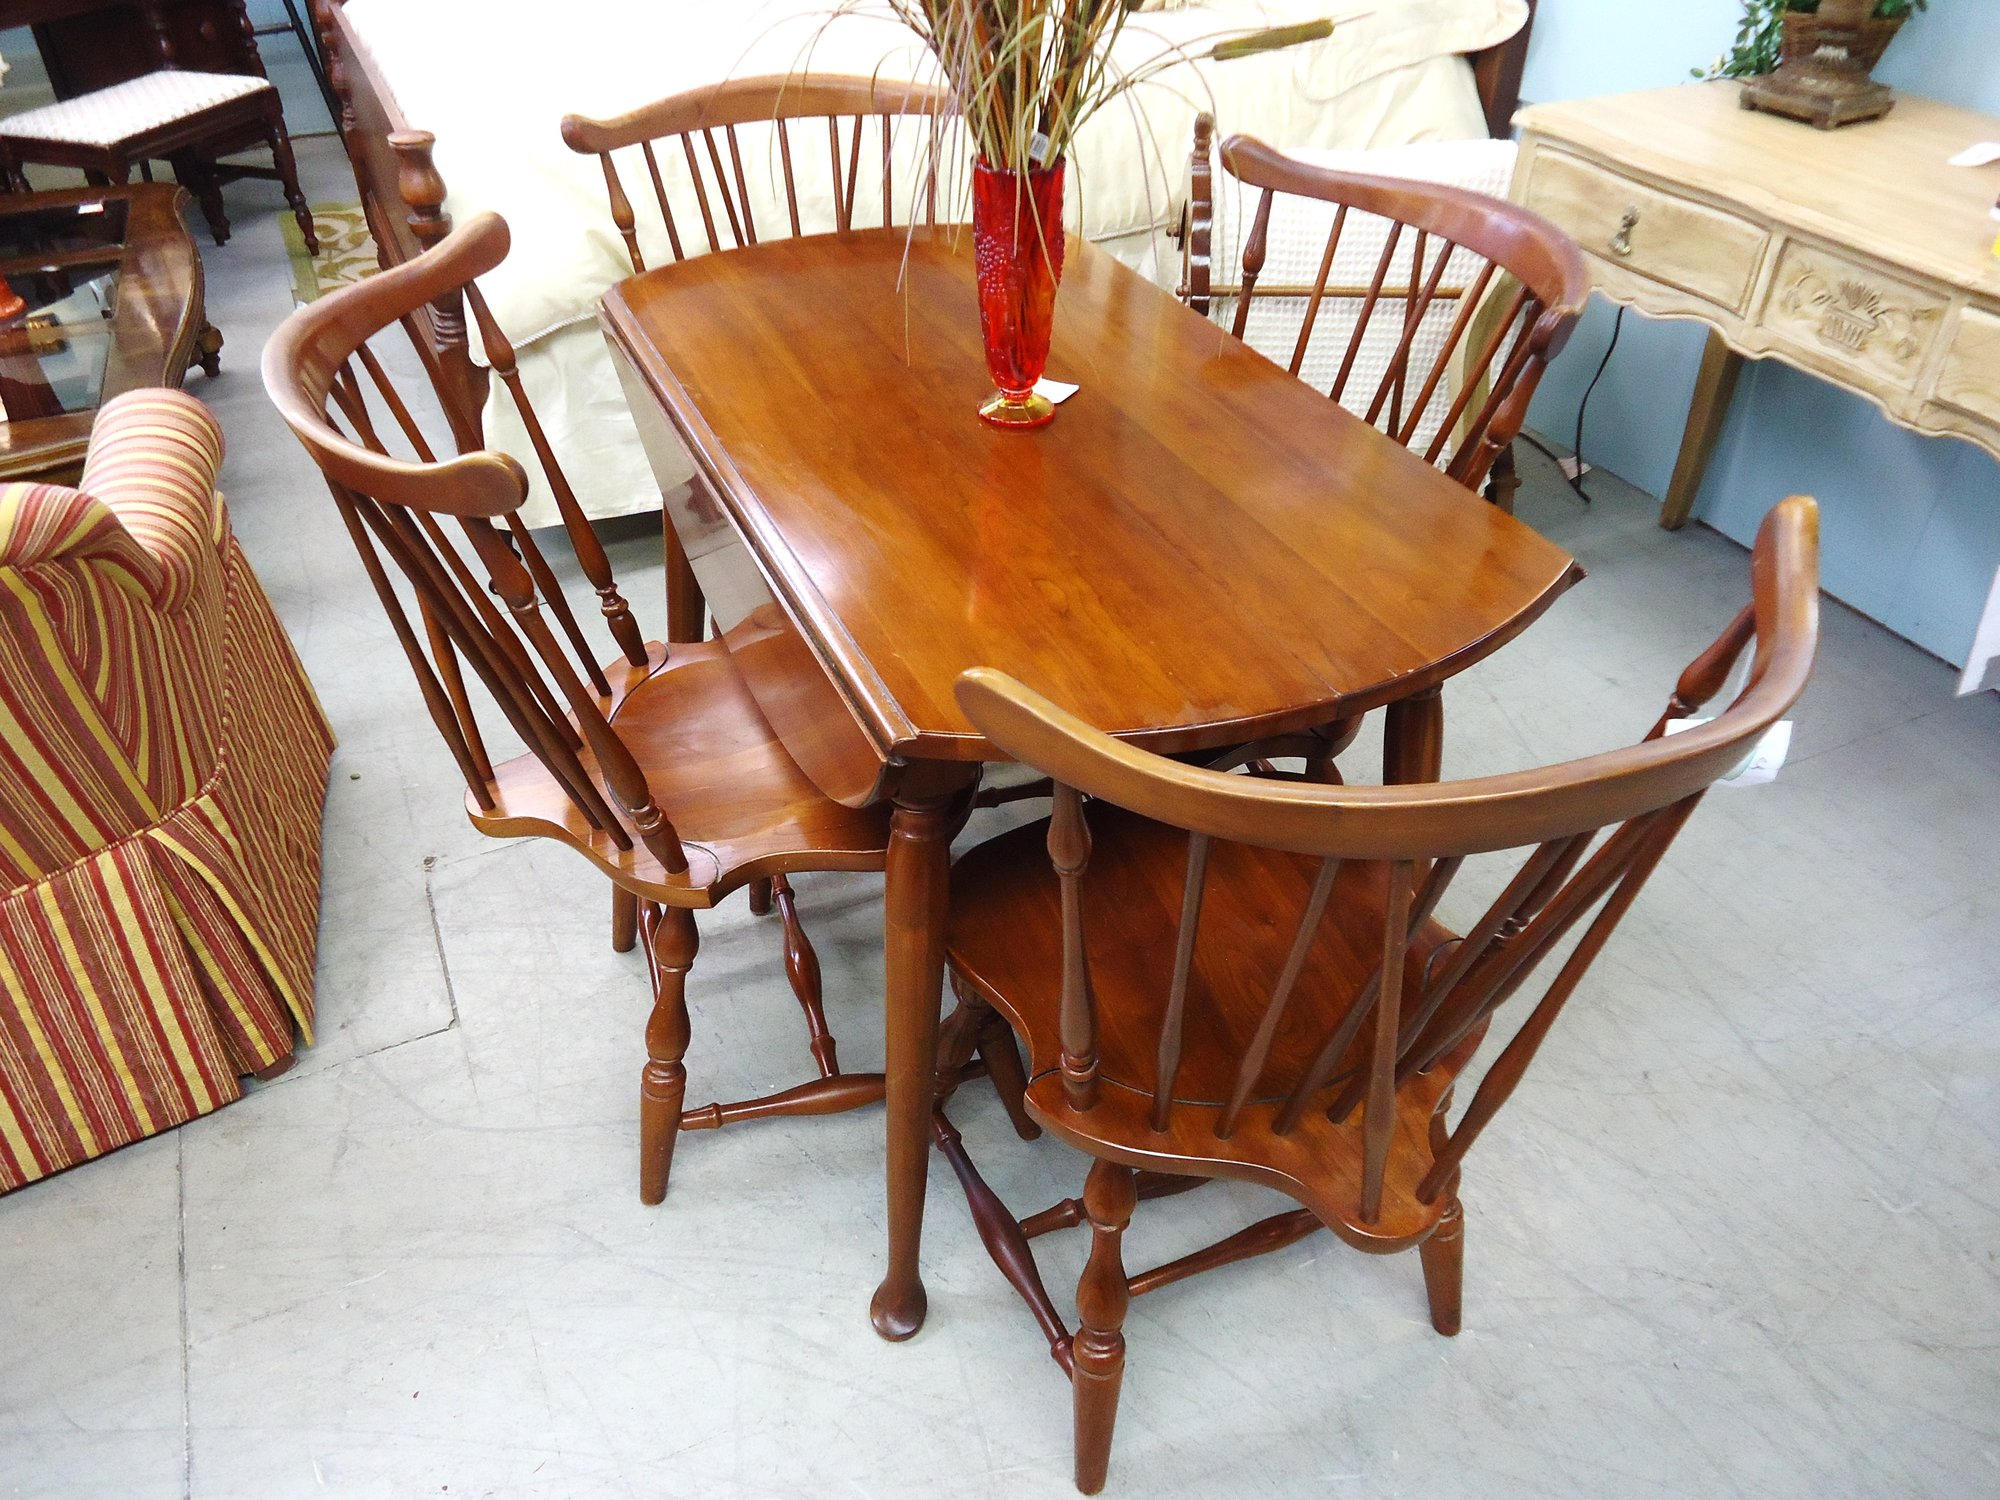 1 14730 Pennsylvania House Cherry Drop Leaf Table With 2